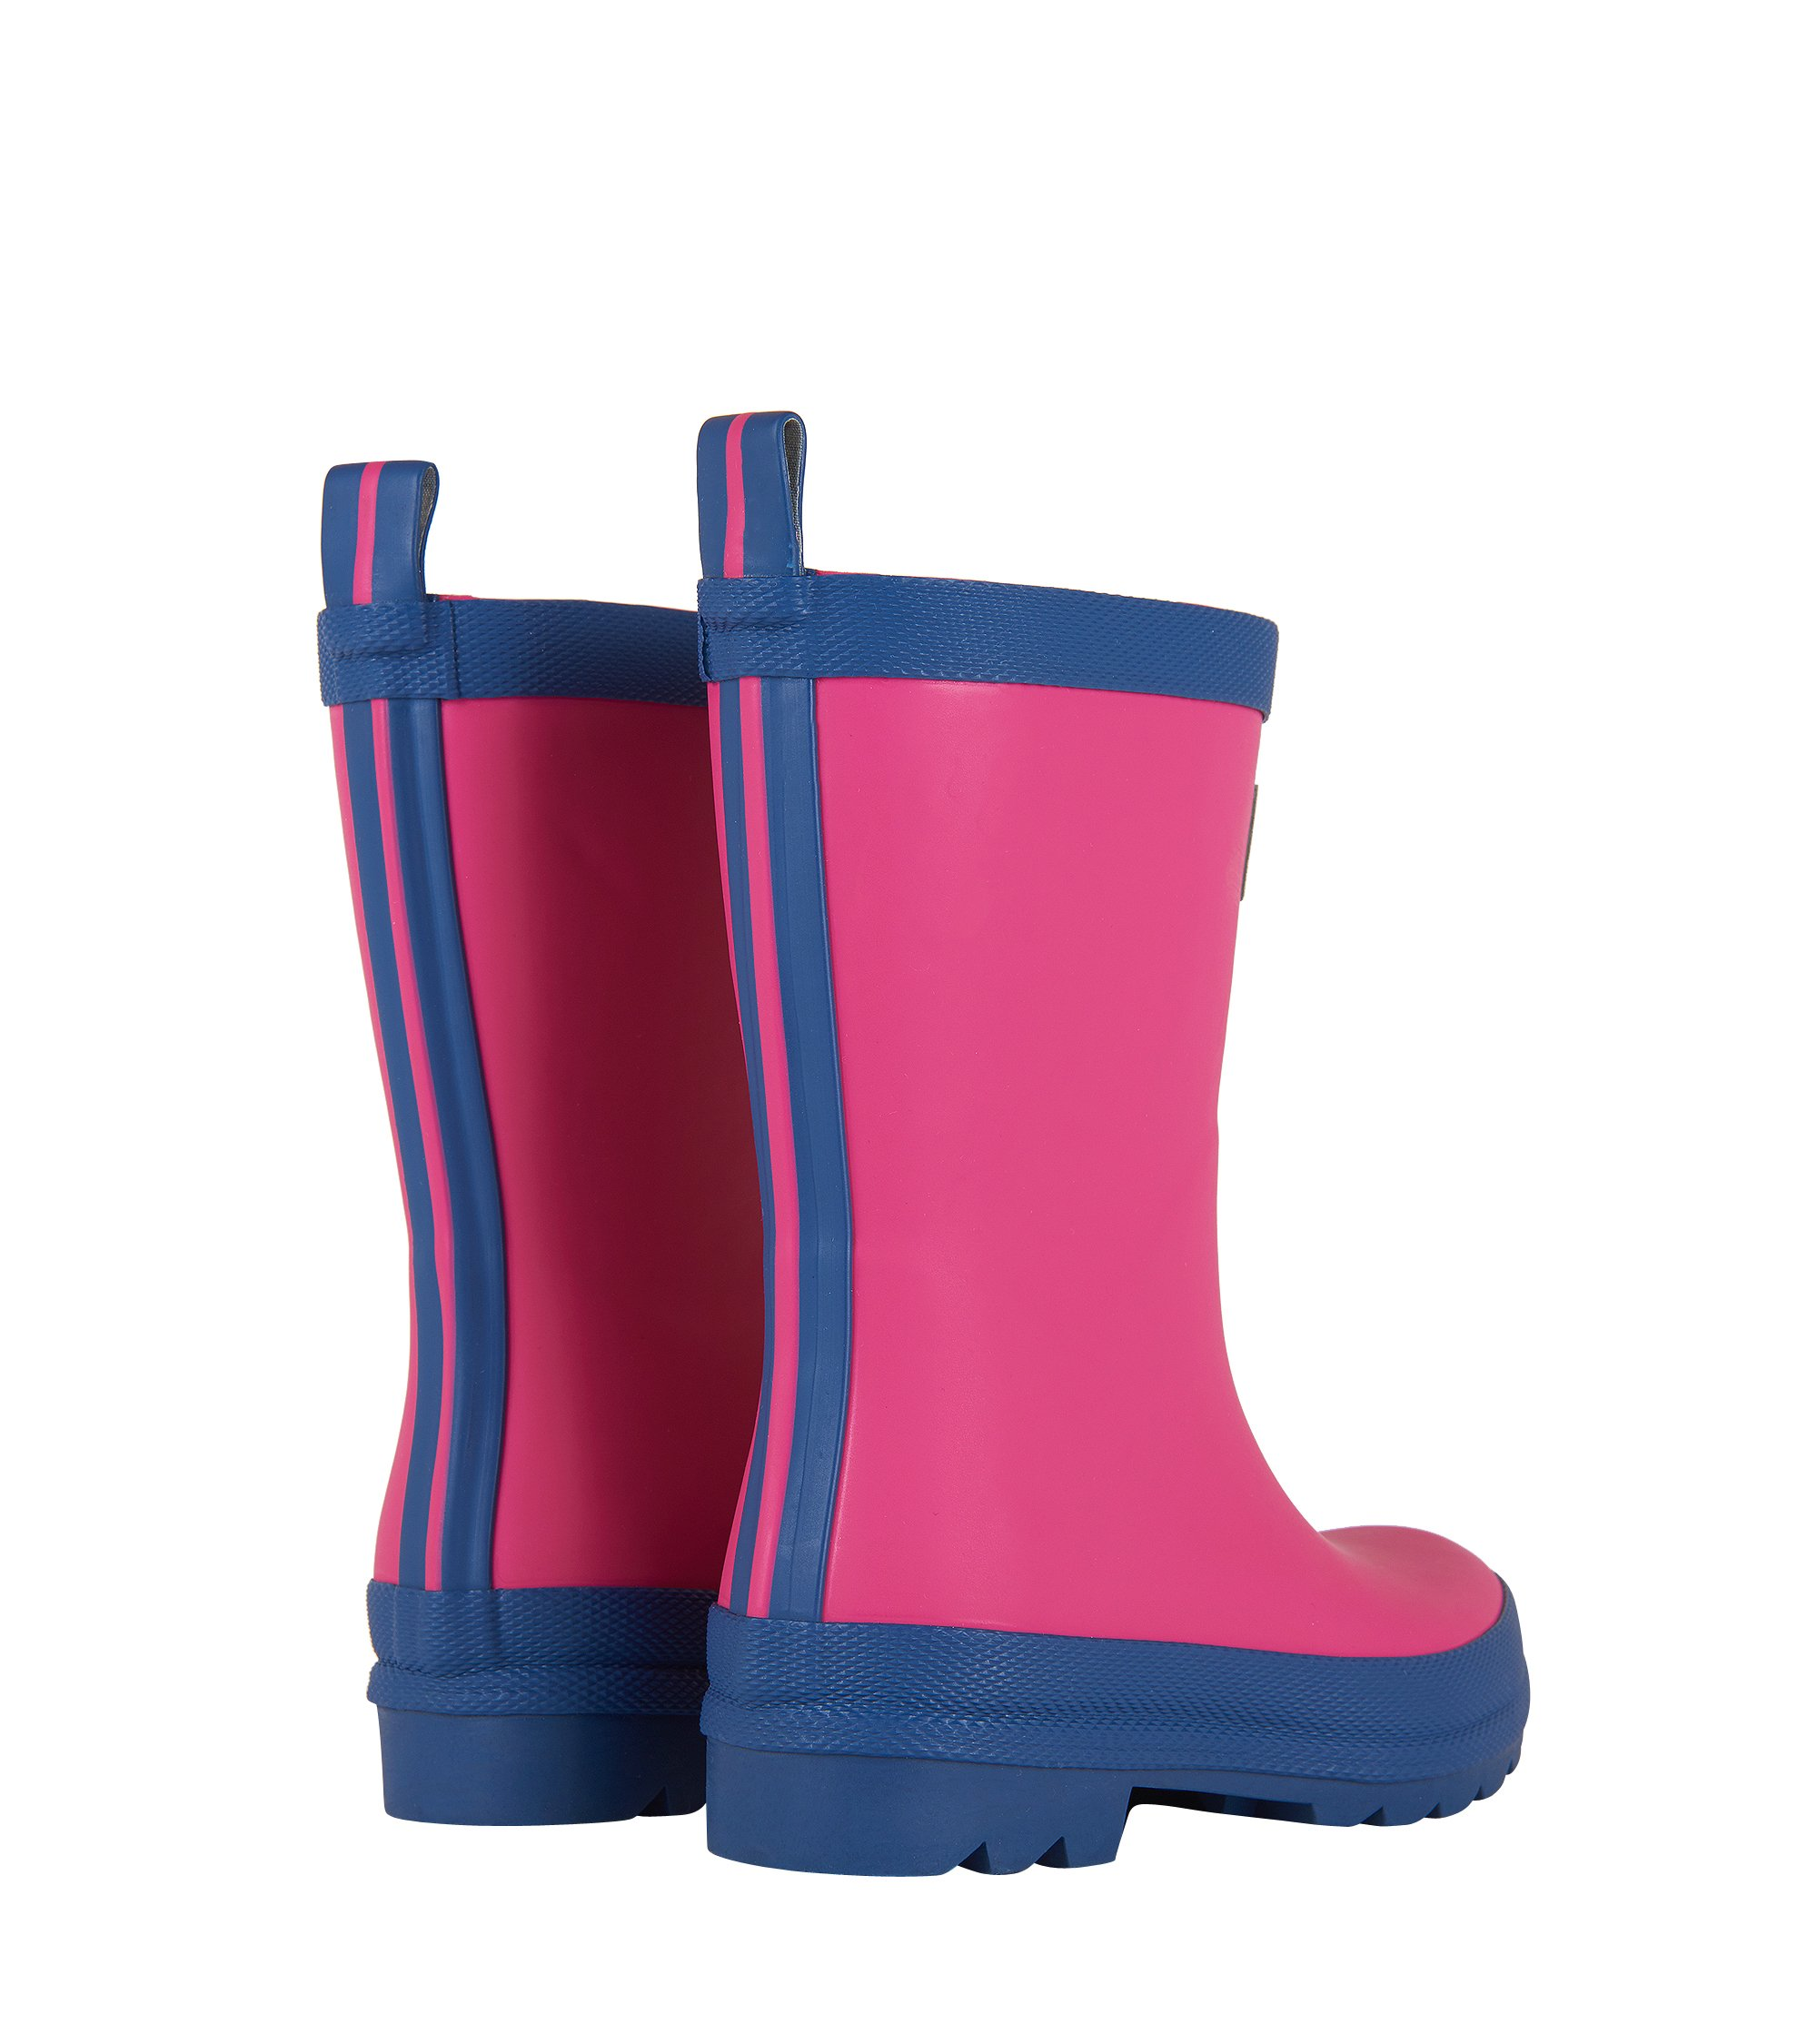 Hatley Kids' Classic Boots Girls Rain Accessory, Fuchsia Navy, 7 M US Toddler by Hatley (Image #8)